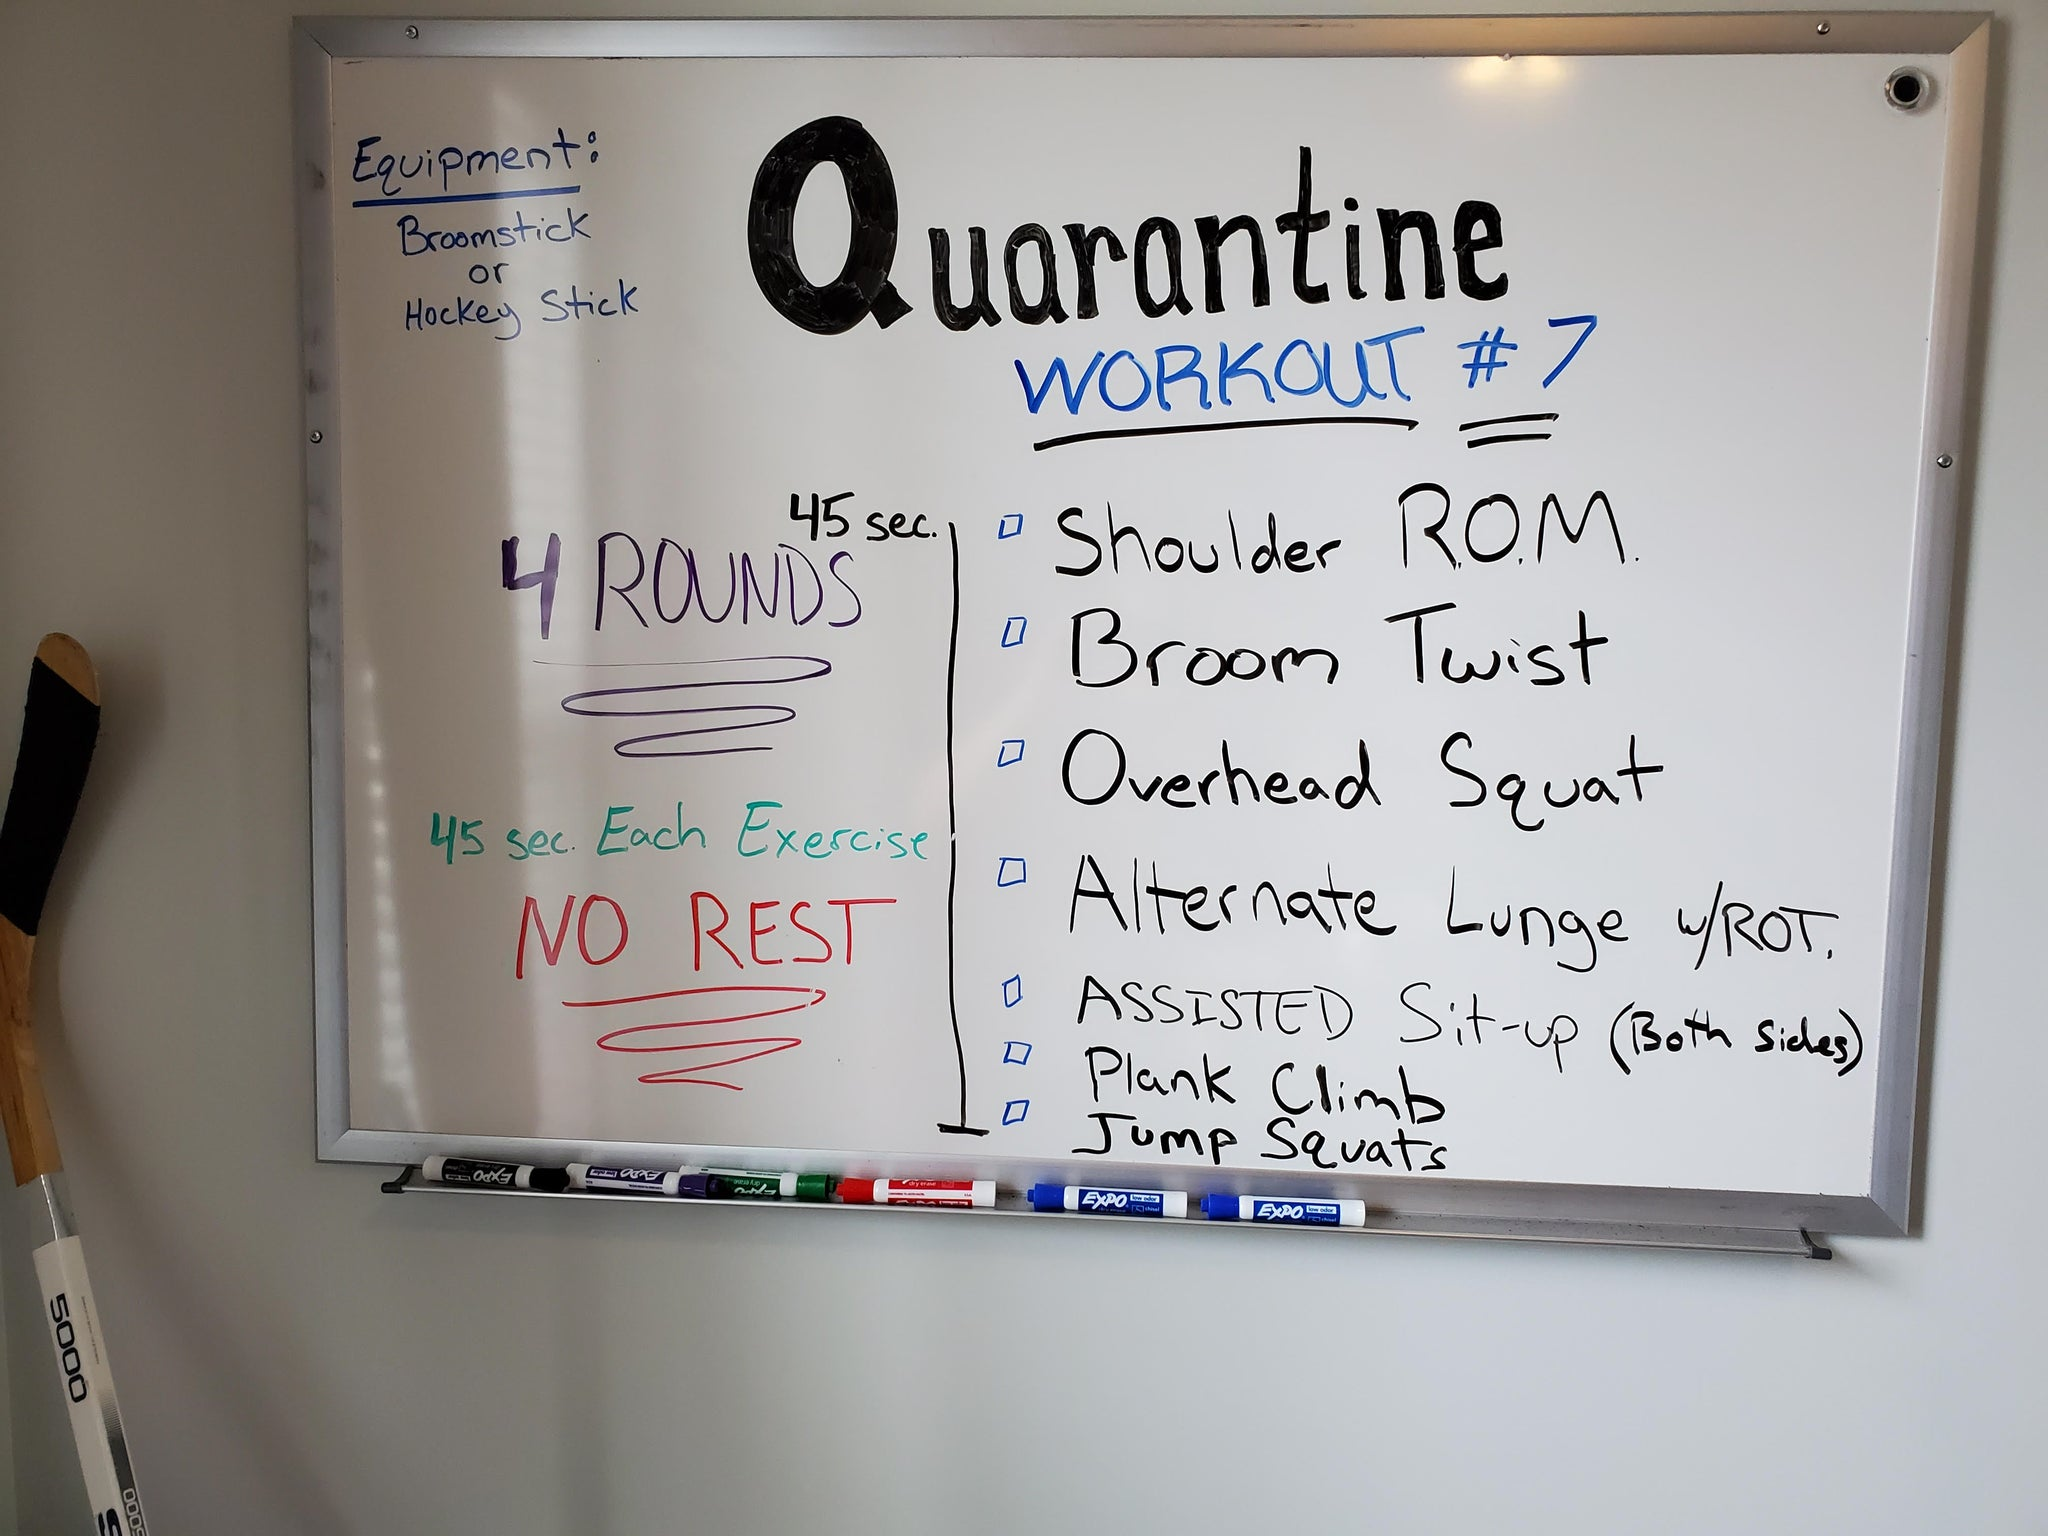 Quarantine fit #7 for Monday & Tuesday April 6th & 7th